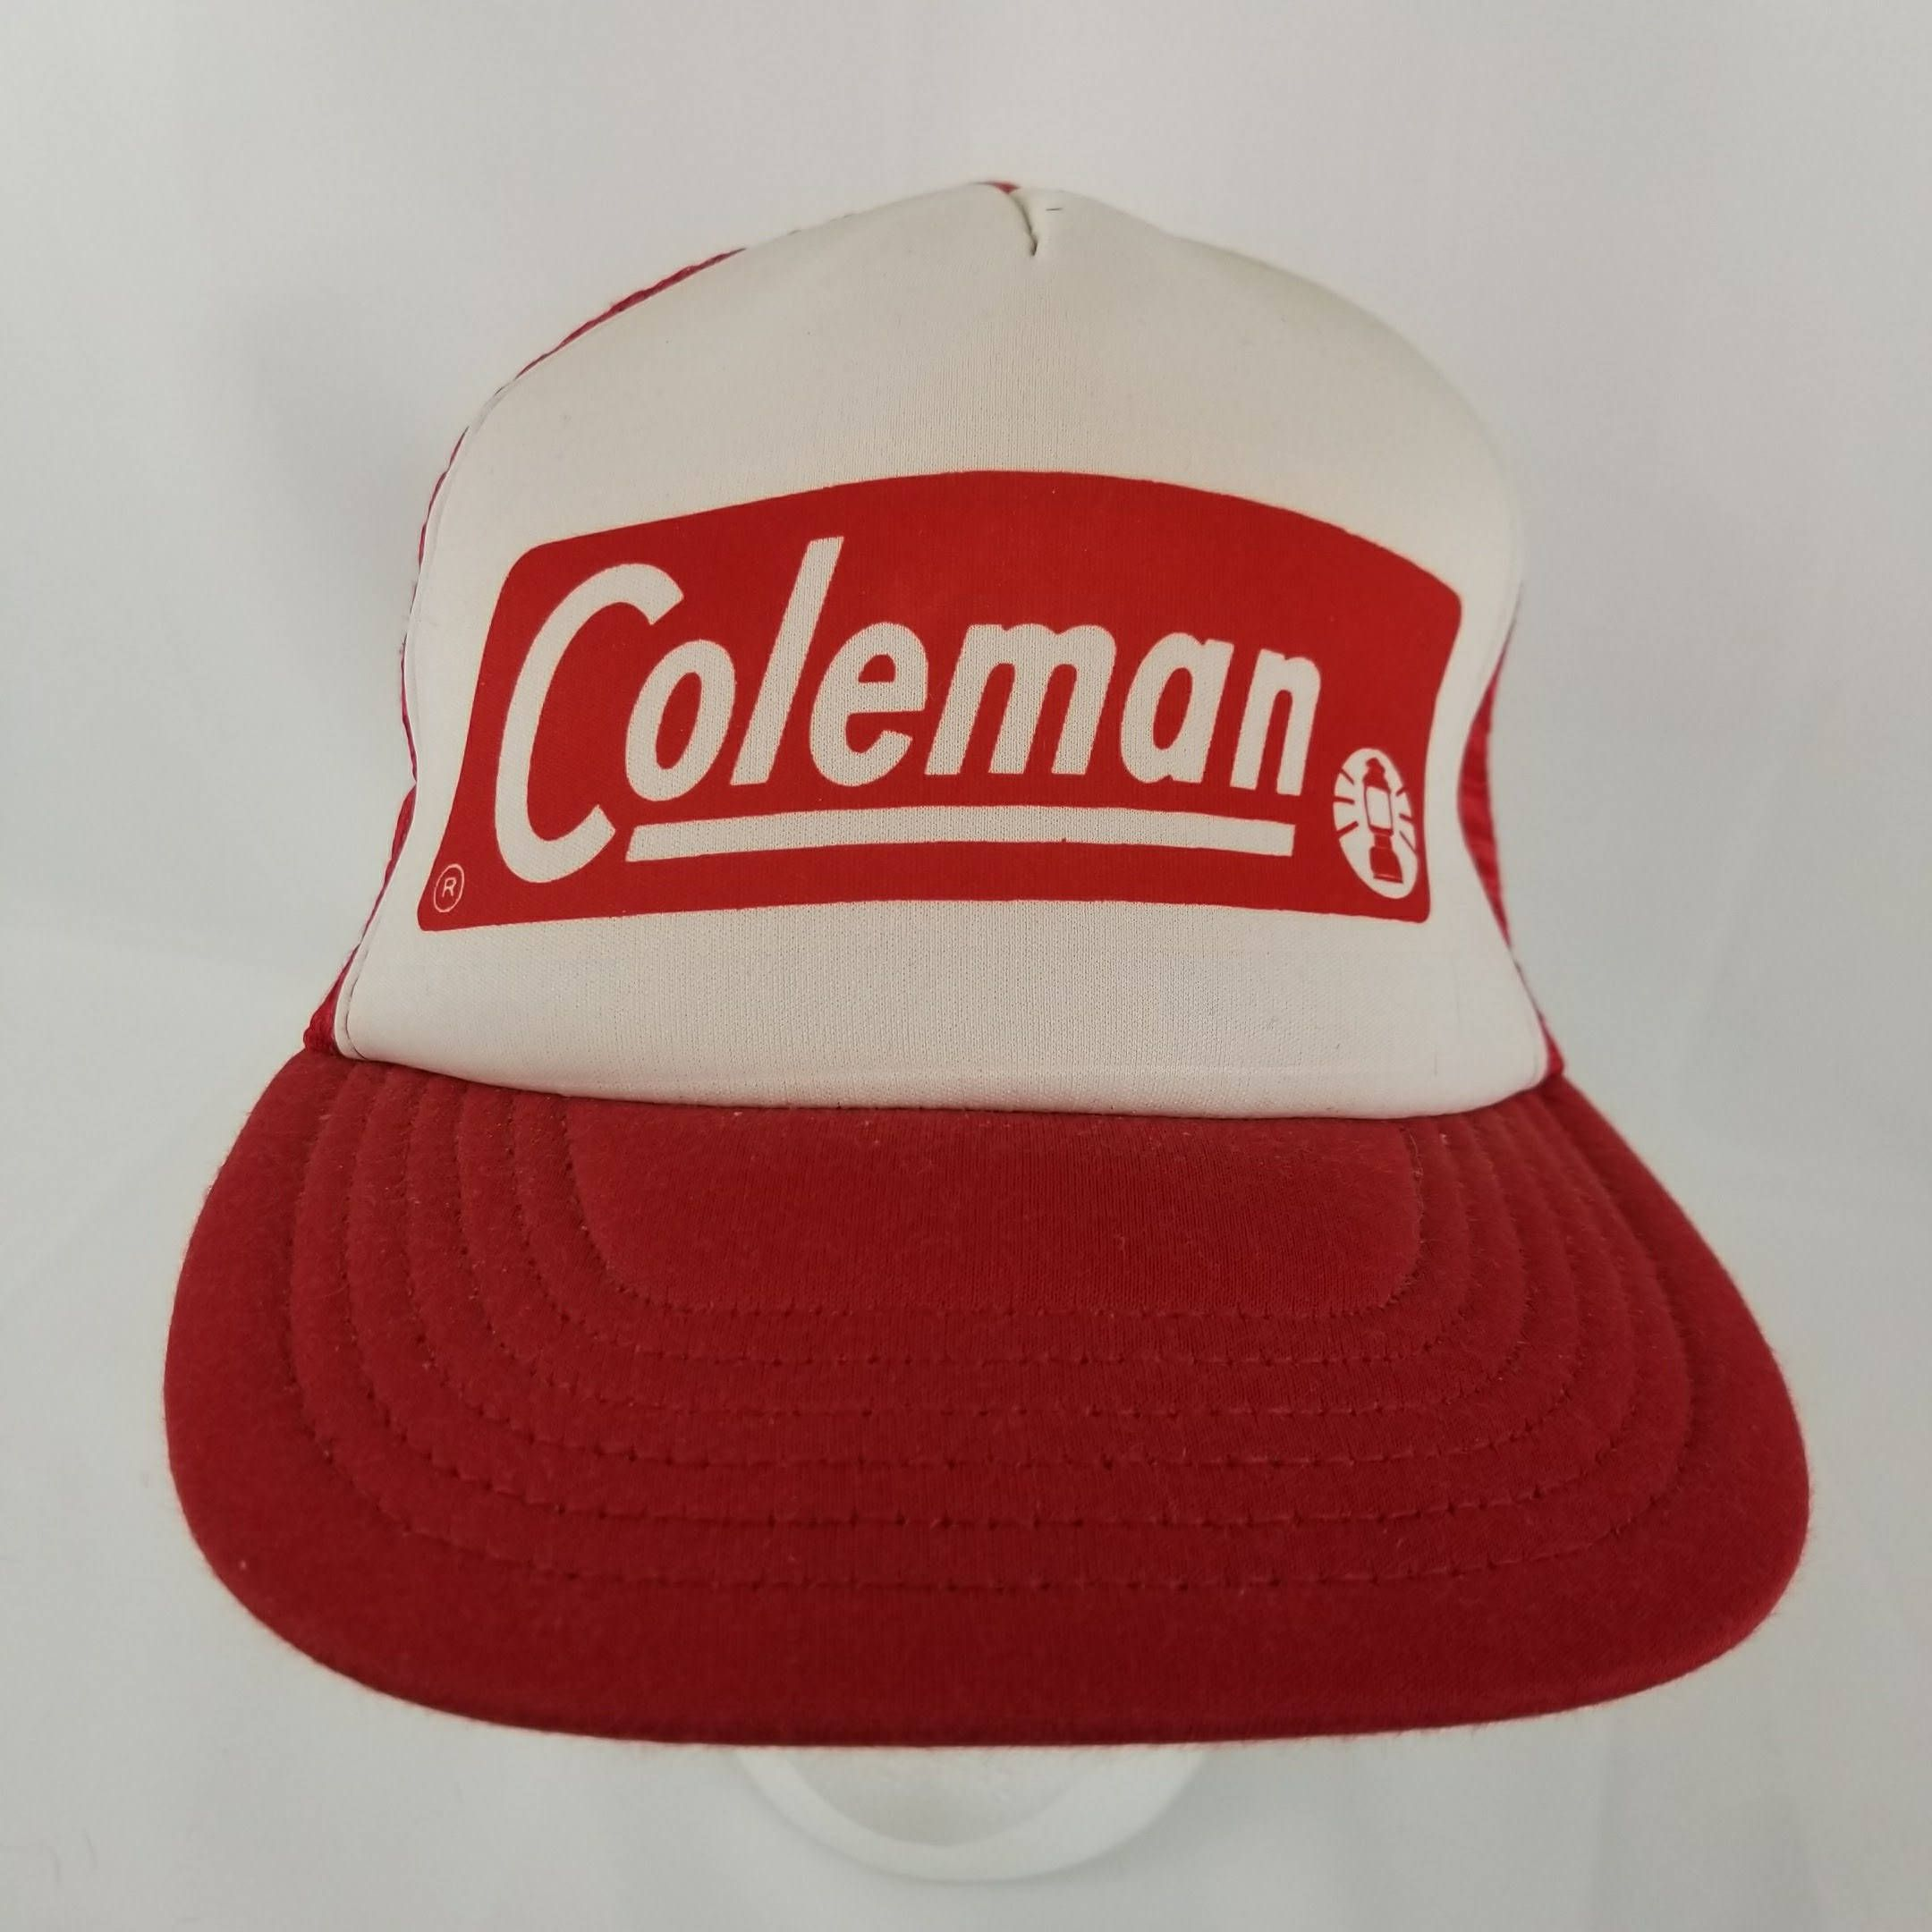 87cf733548b Vintage Coleman Trucker Hat Mesh Snapback Cap Red Outdoors Camp Hiking  Lantern by TraSheeWomen on Etsy  coleman  lantern  vintage  snapback   truckerhat ...